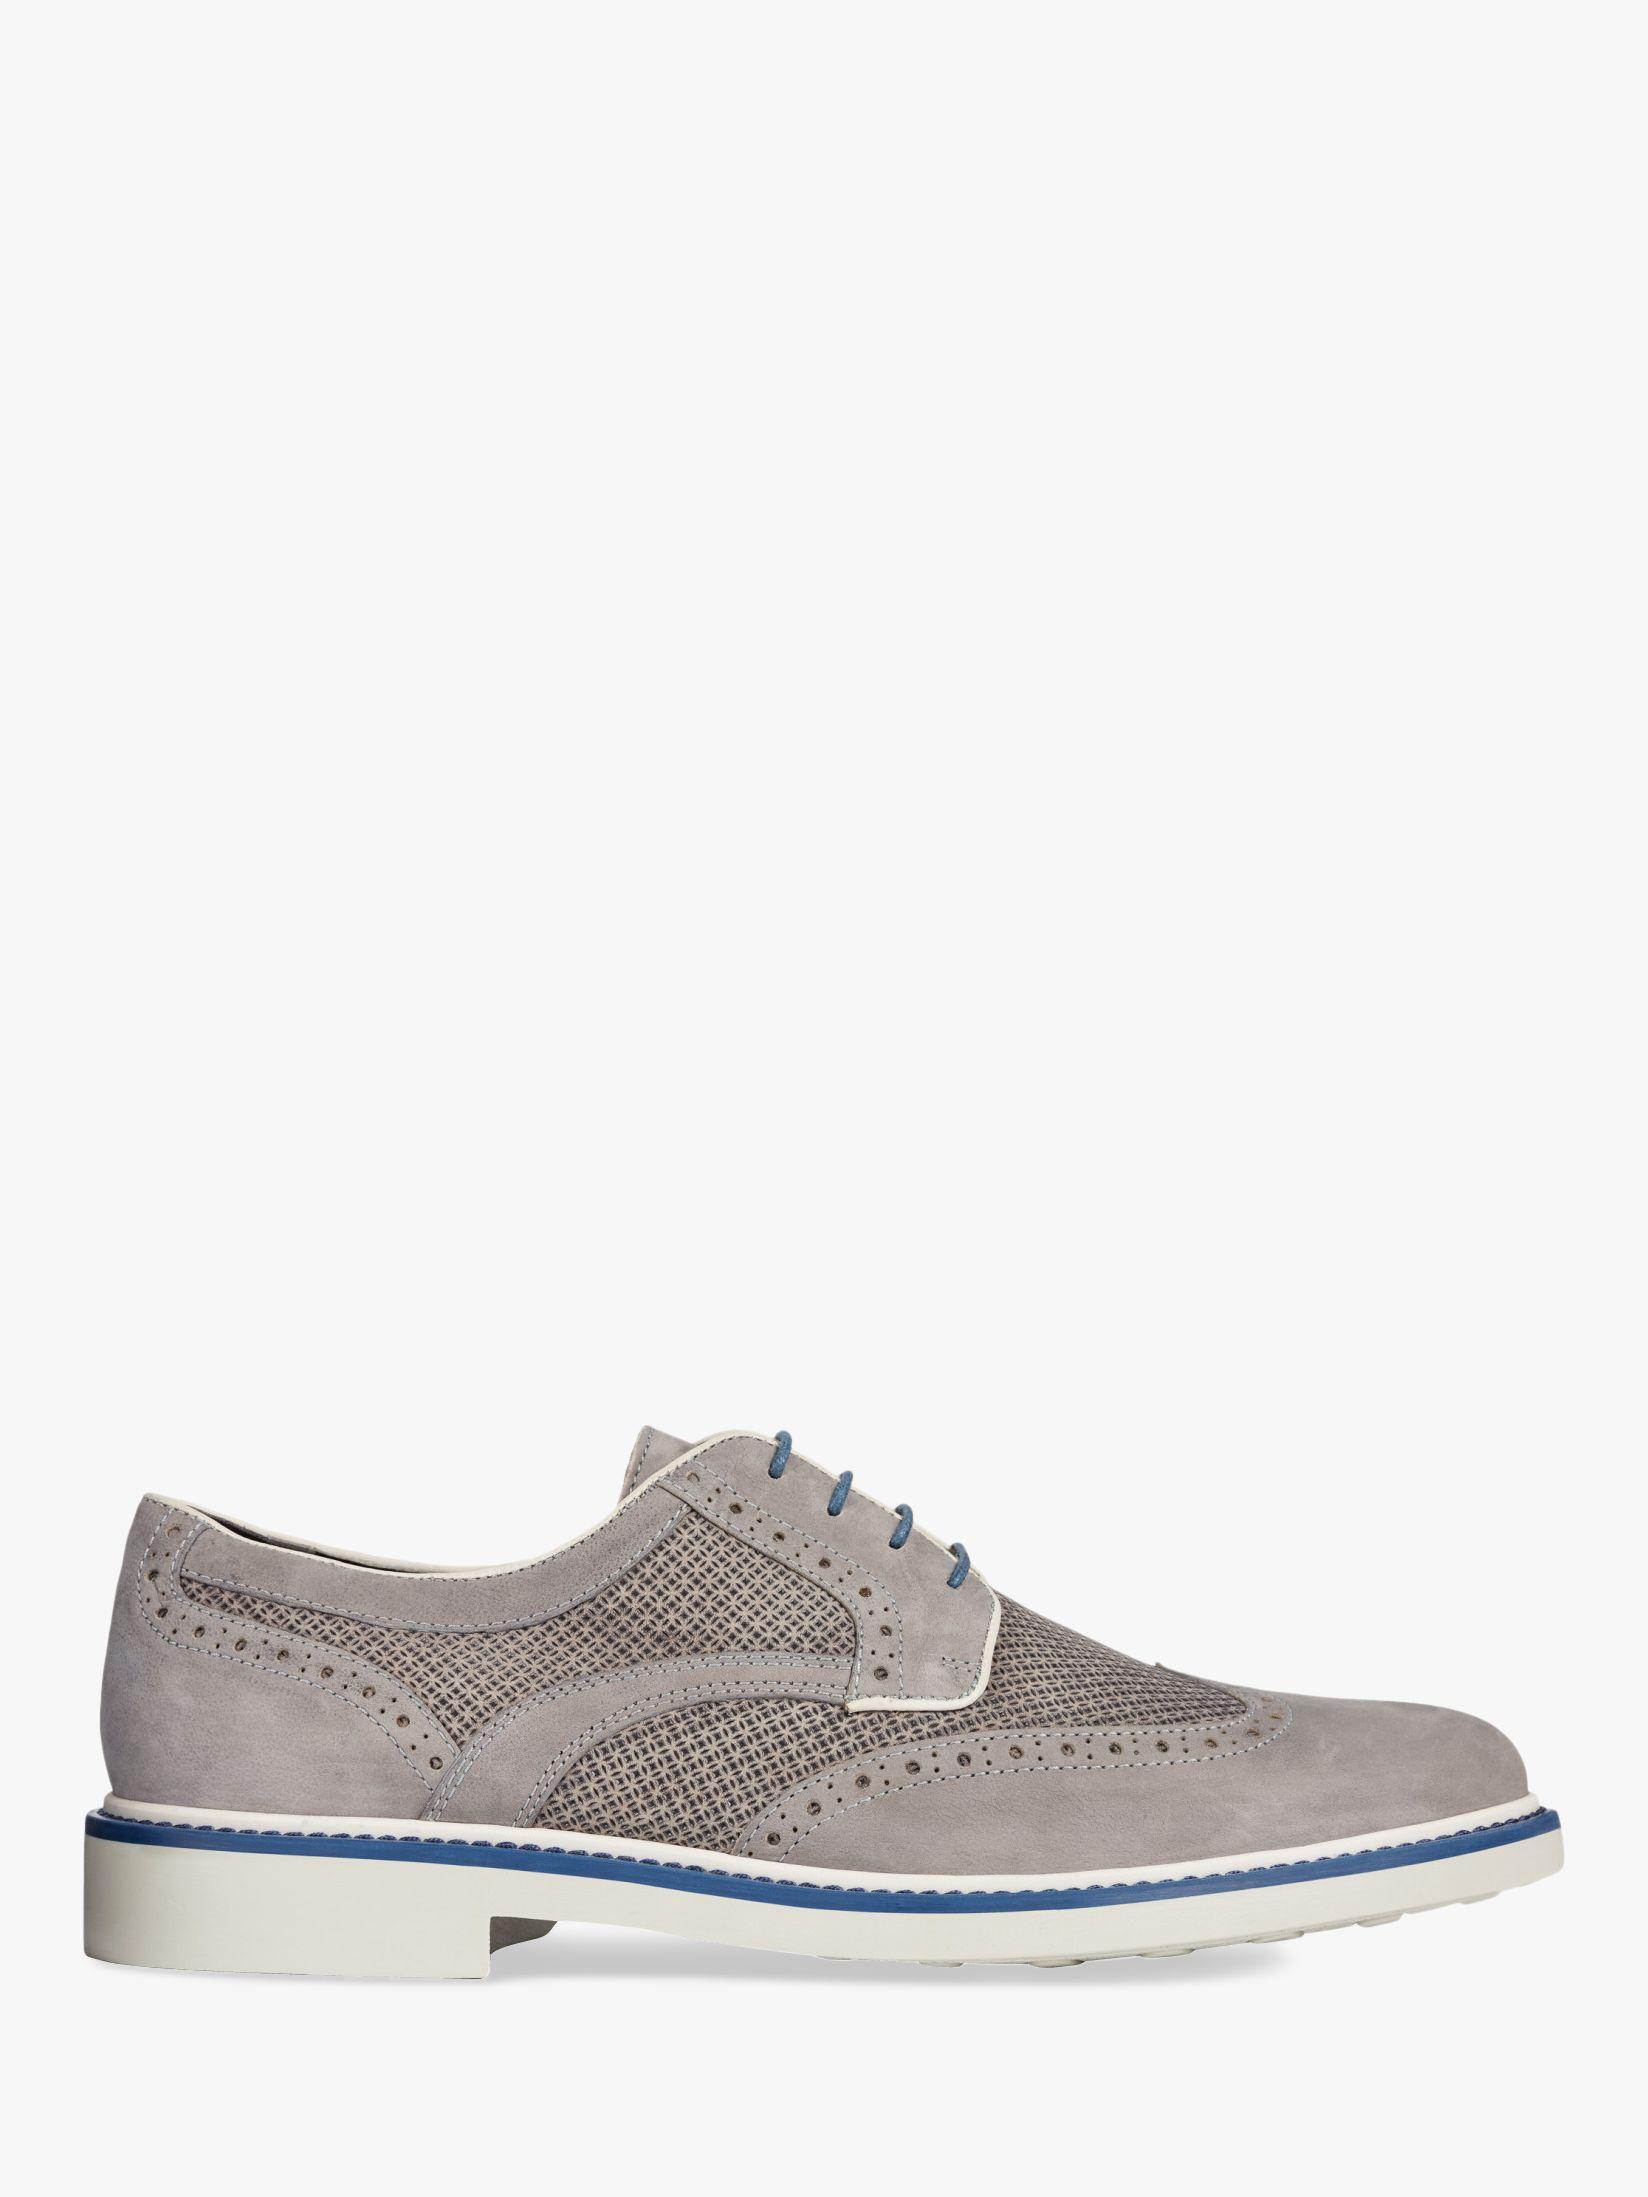 b6e7bb8968 Geox Silmor Suede Derby Shoes in Gray for Men - Lyst